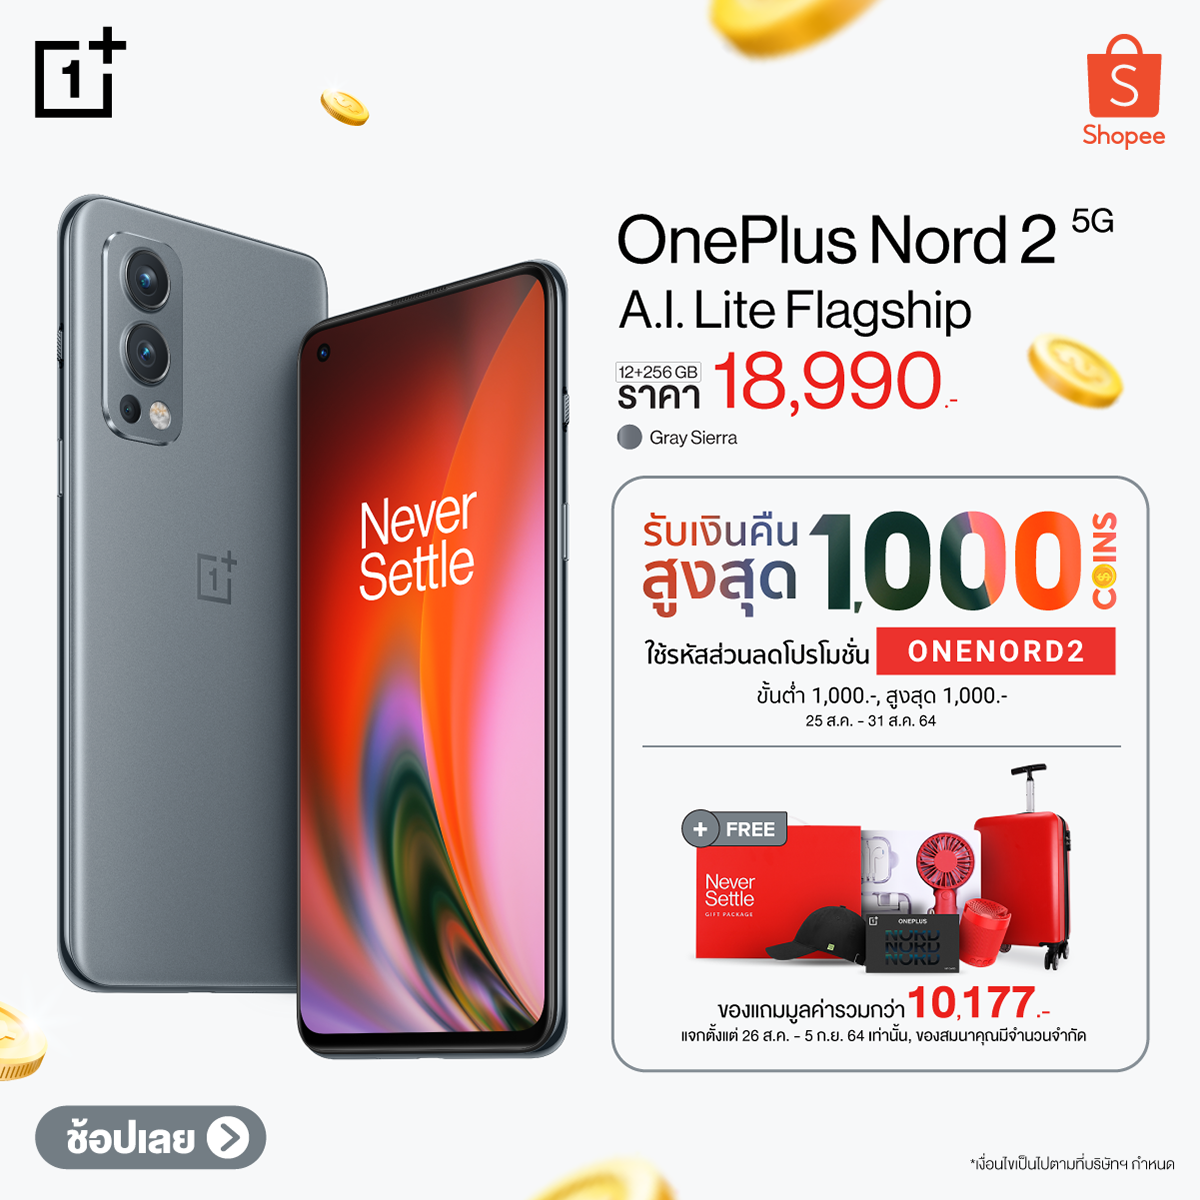 OnePlus-Nord-2-First-Sale-@Shopee_0